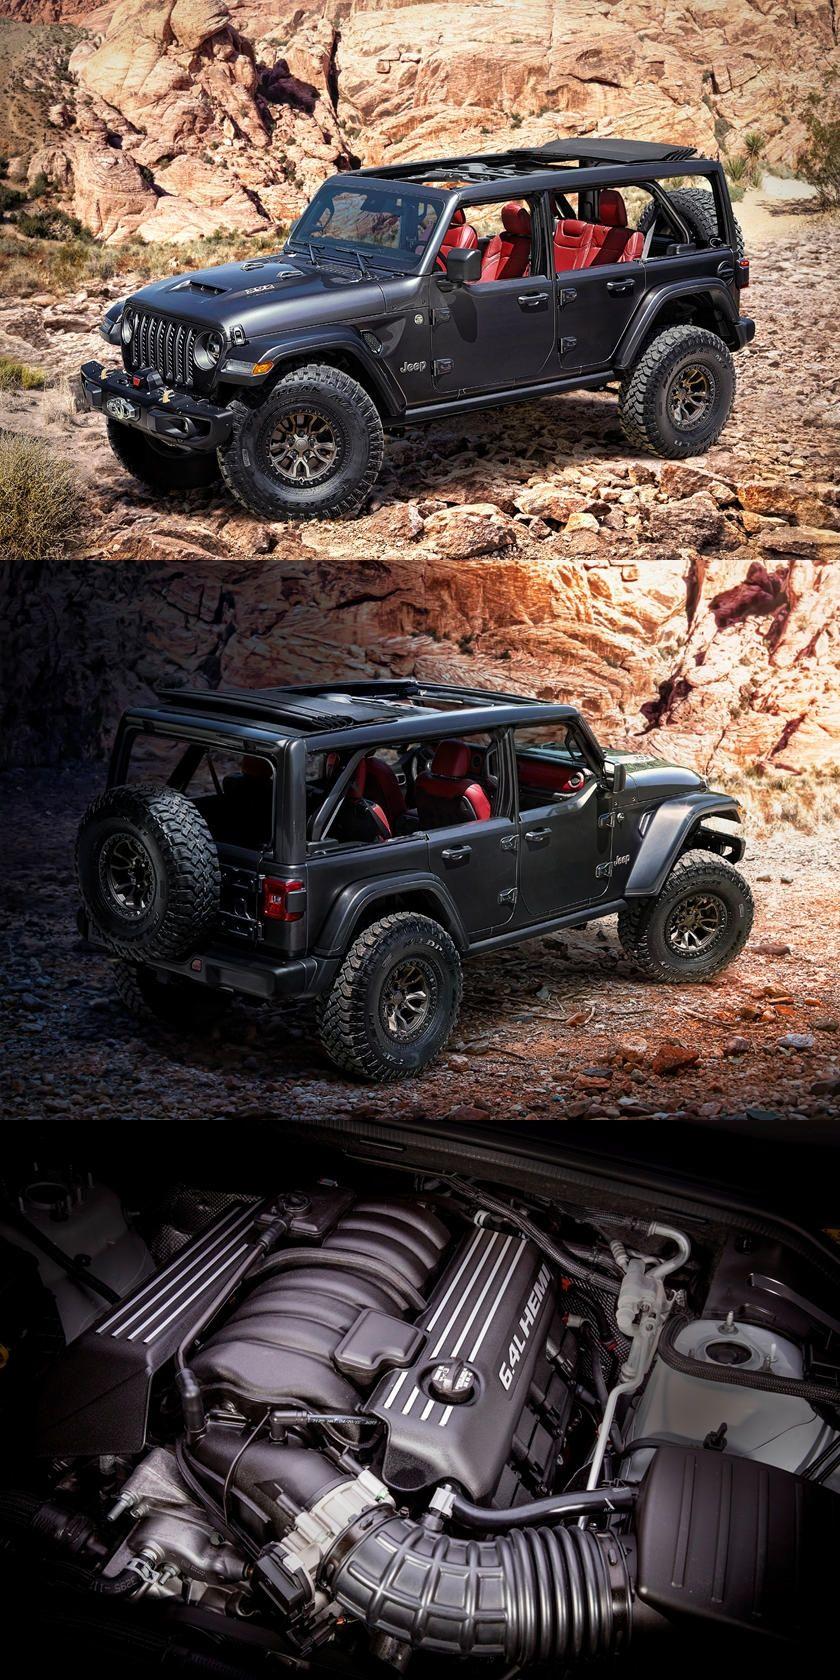 Yes Jeep Wrangler 392 V8 Will Make Production Time To Go Hunt Broncos In 2020 Jeep Wrangler Jeep Wrangler